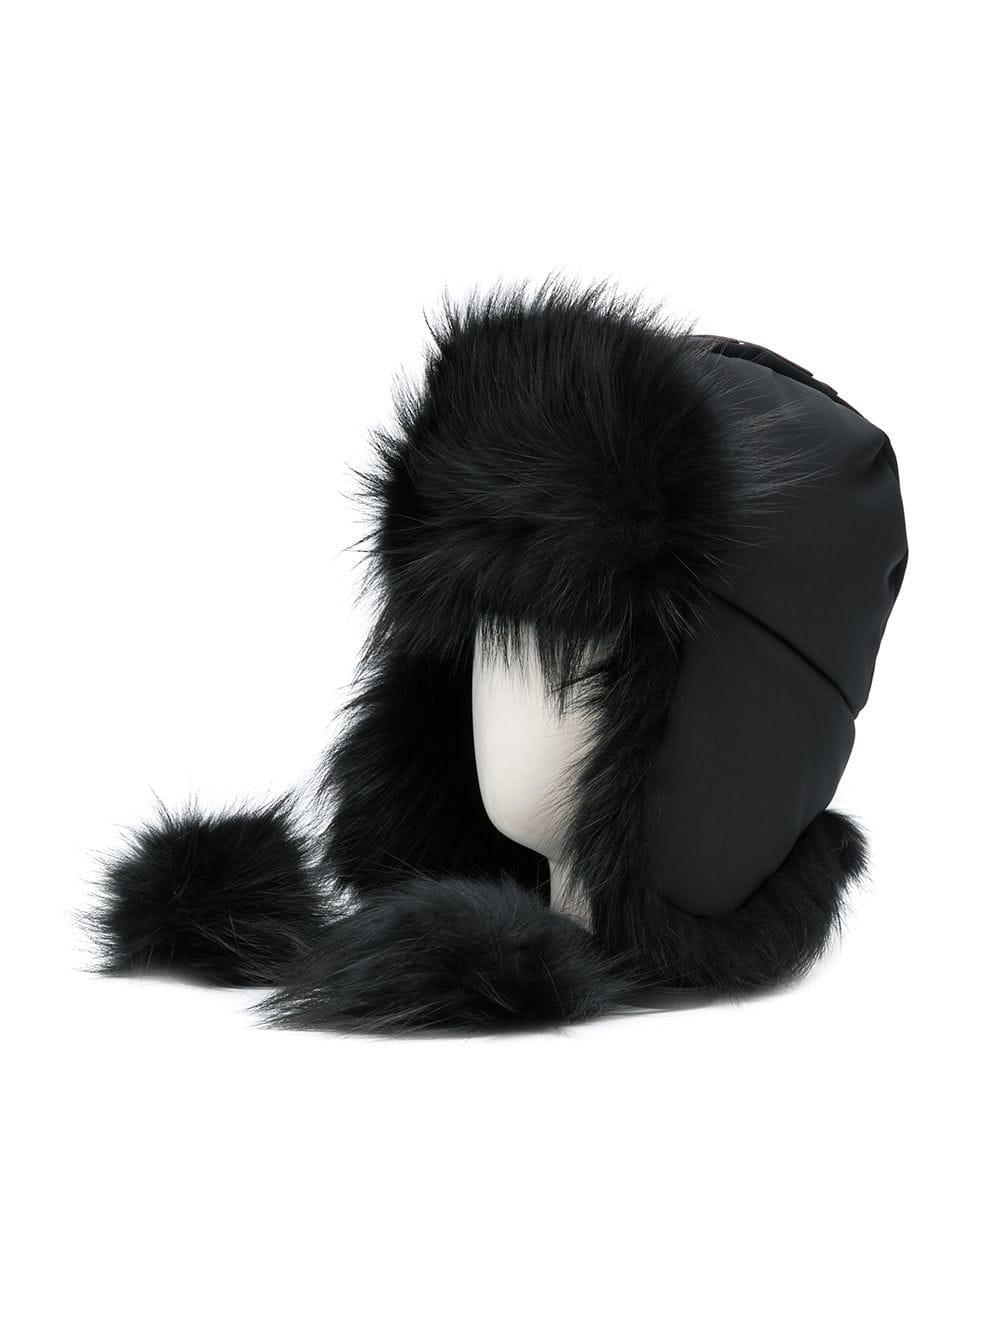 6fe5c87b9a5 Fendi - Black Fur-trim Pom Pom Hat - Lyst. View fullscreen